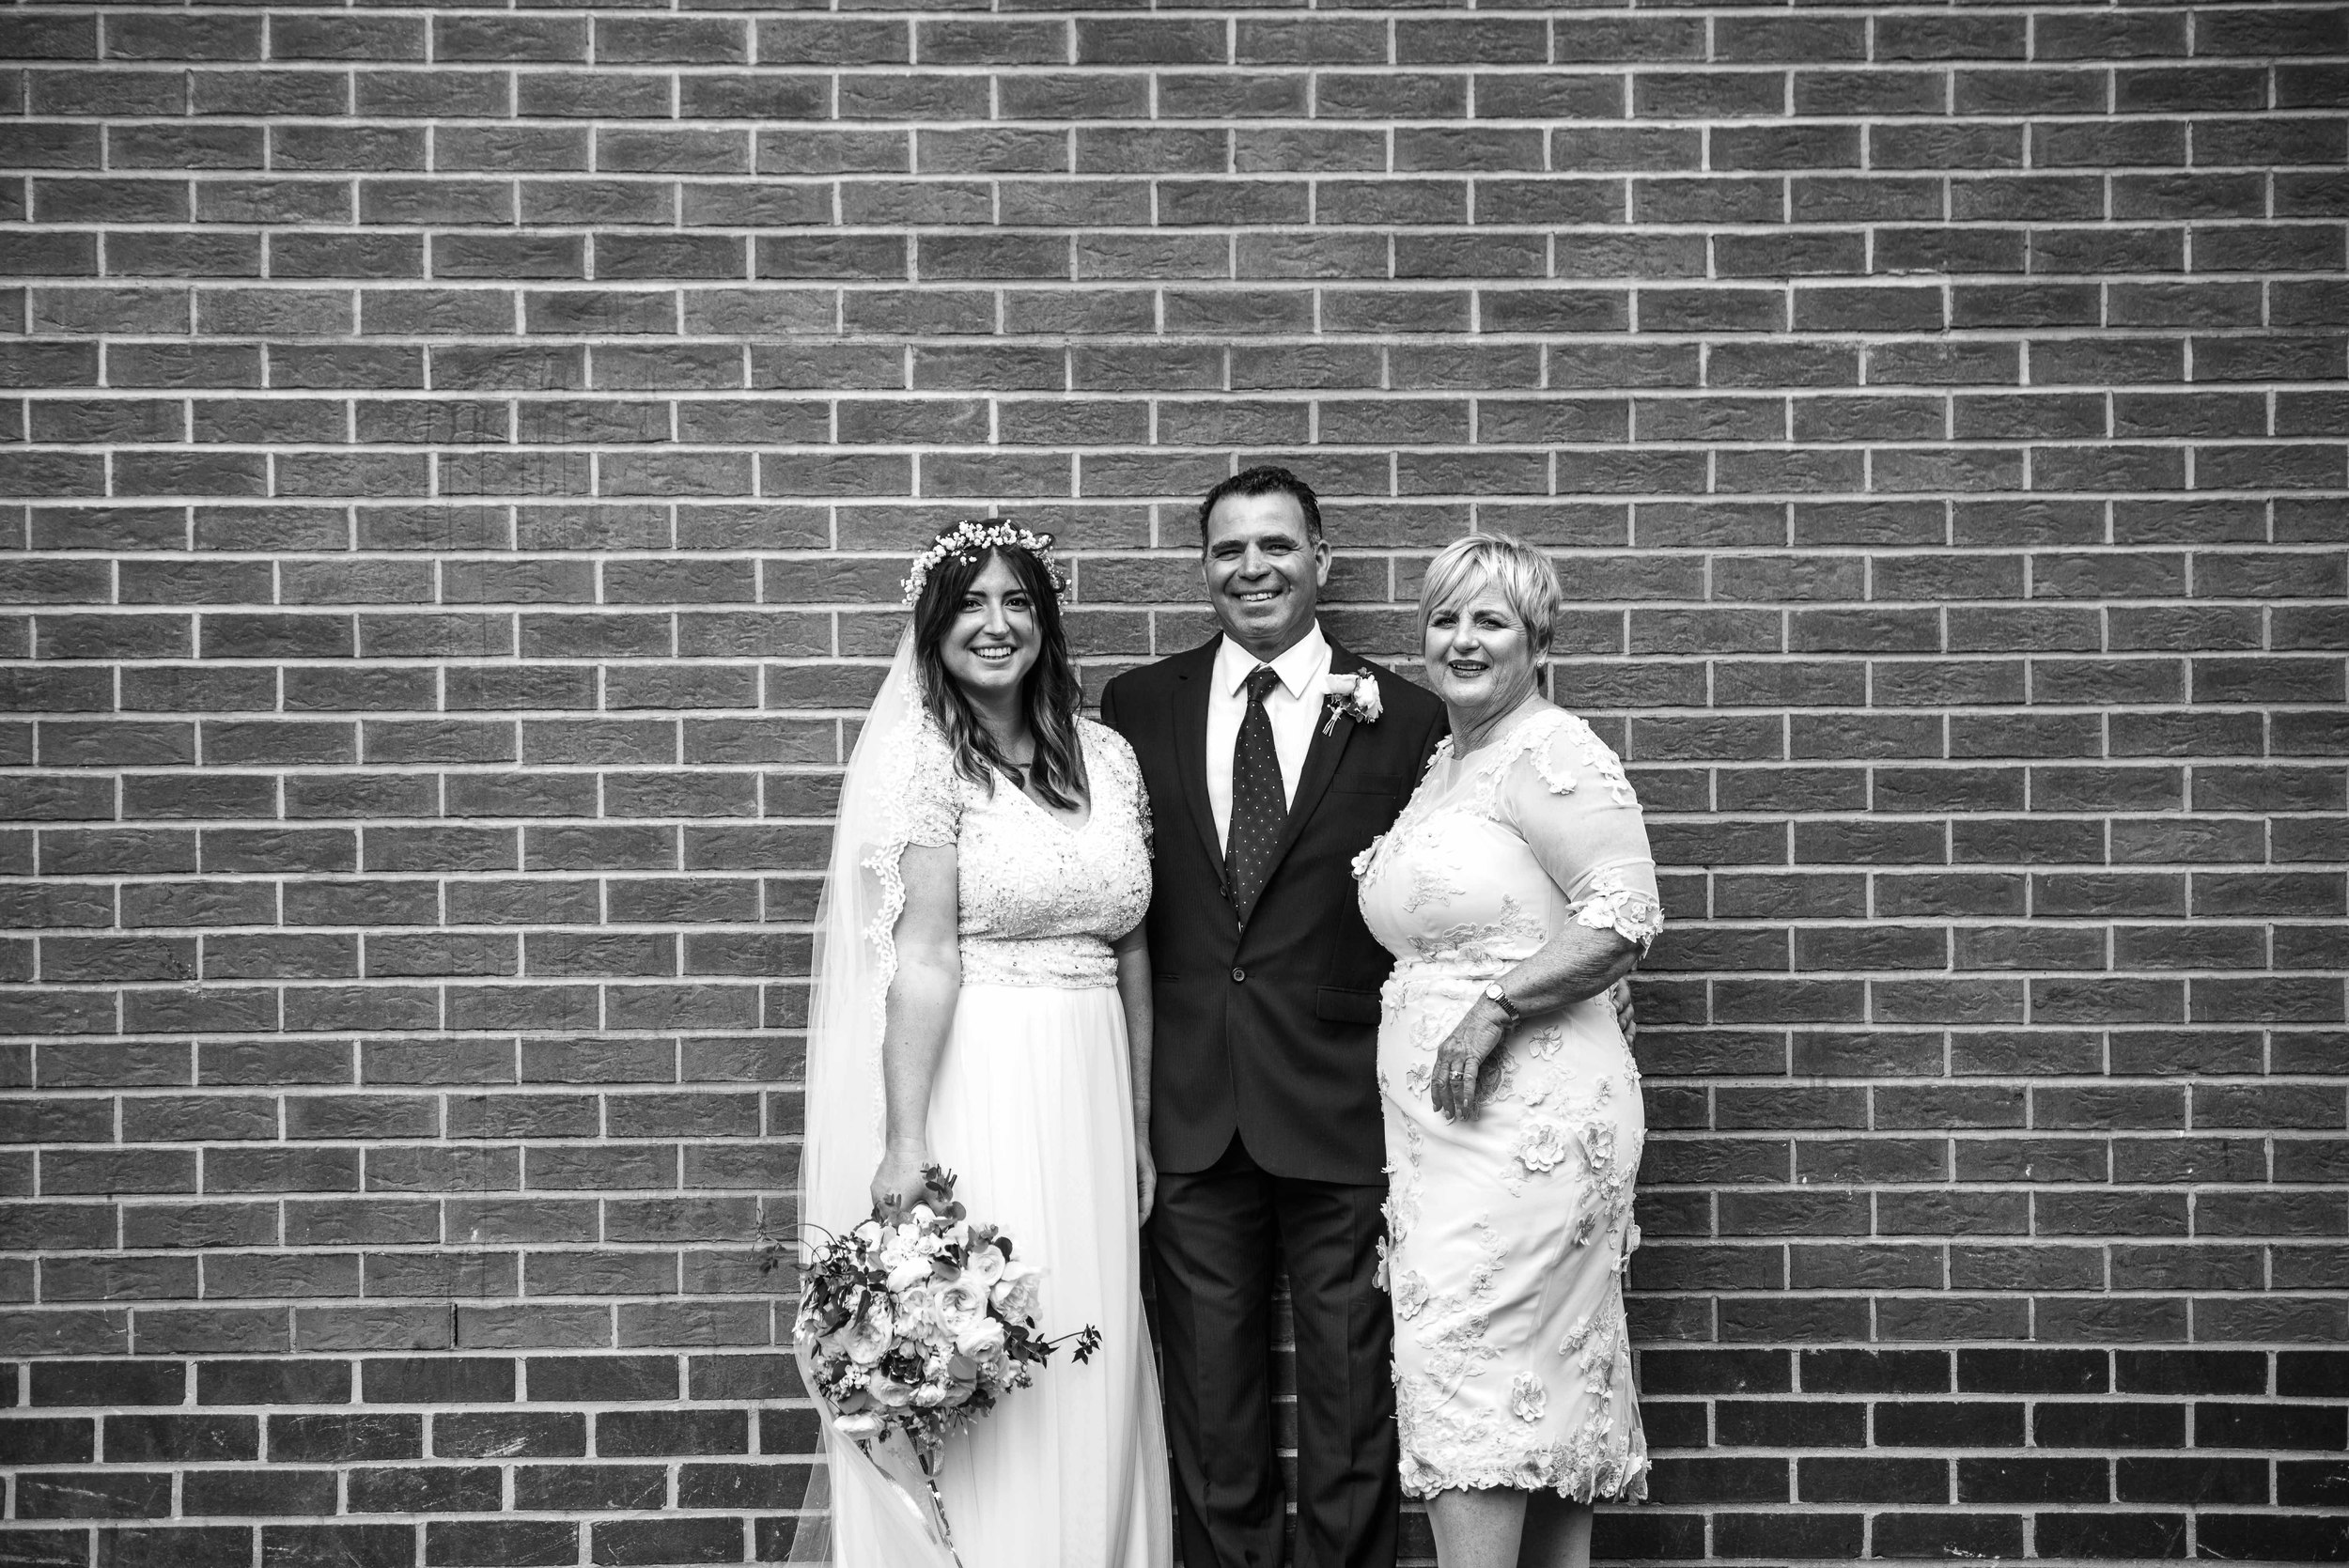 Natalie & Adam SM (142 of 200).jpg